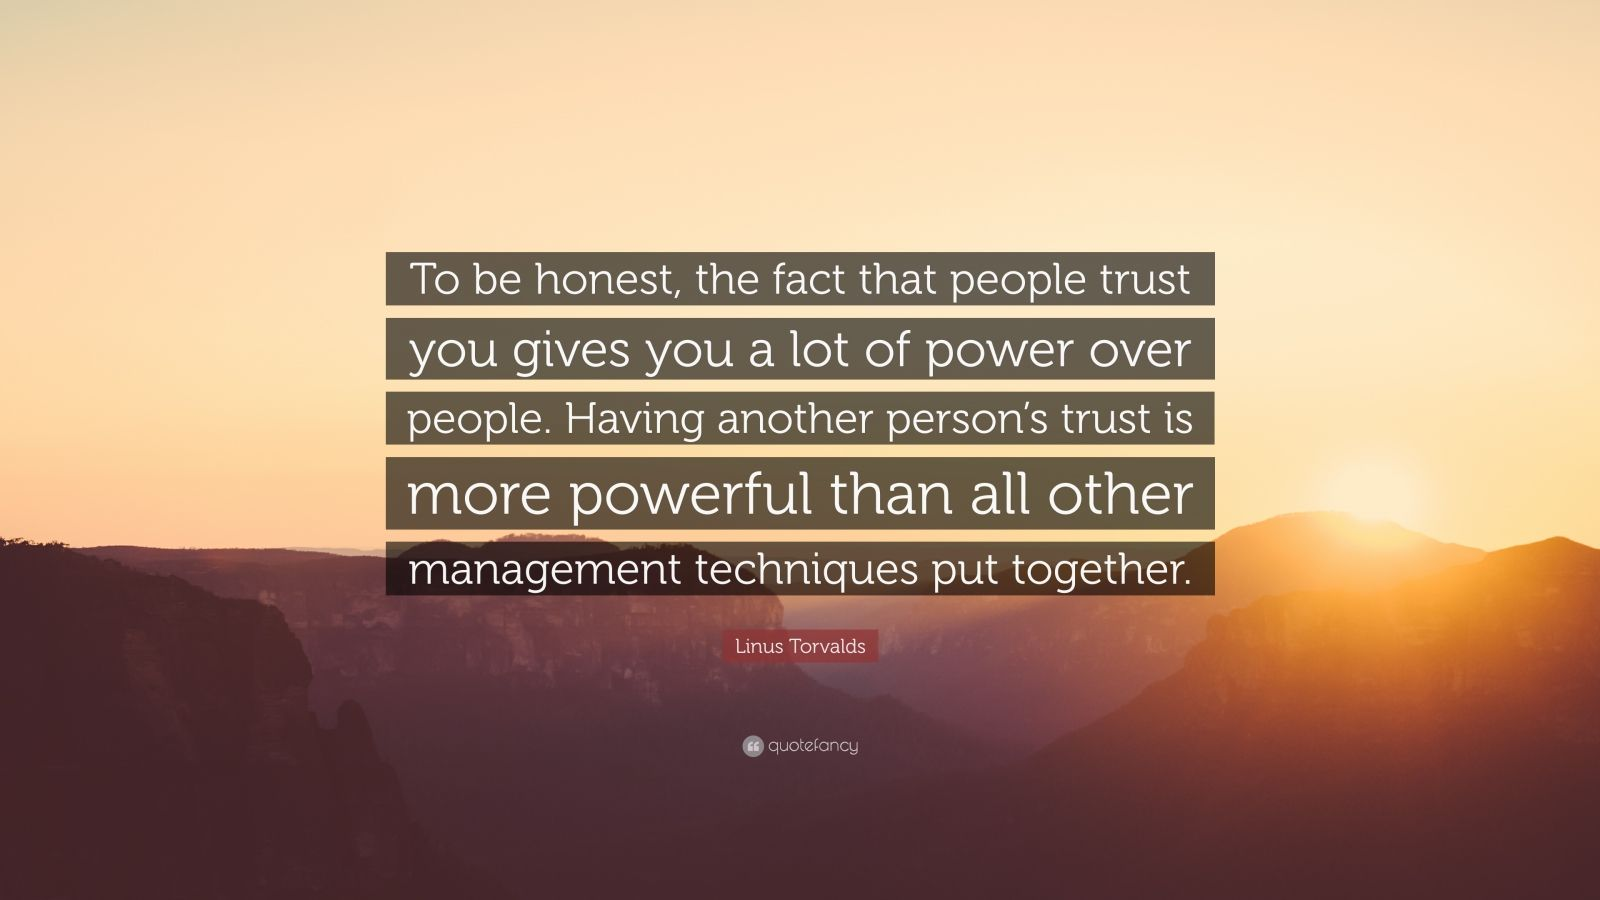 """Linus Torvalds Quote: """"To be honest, the fact that people trust you gives you a lot of power over people. Having another person's trust is more powerful than all other management techniques put together."""""""